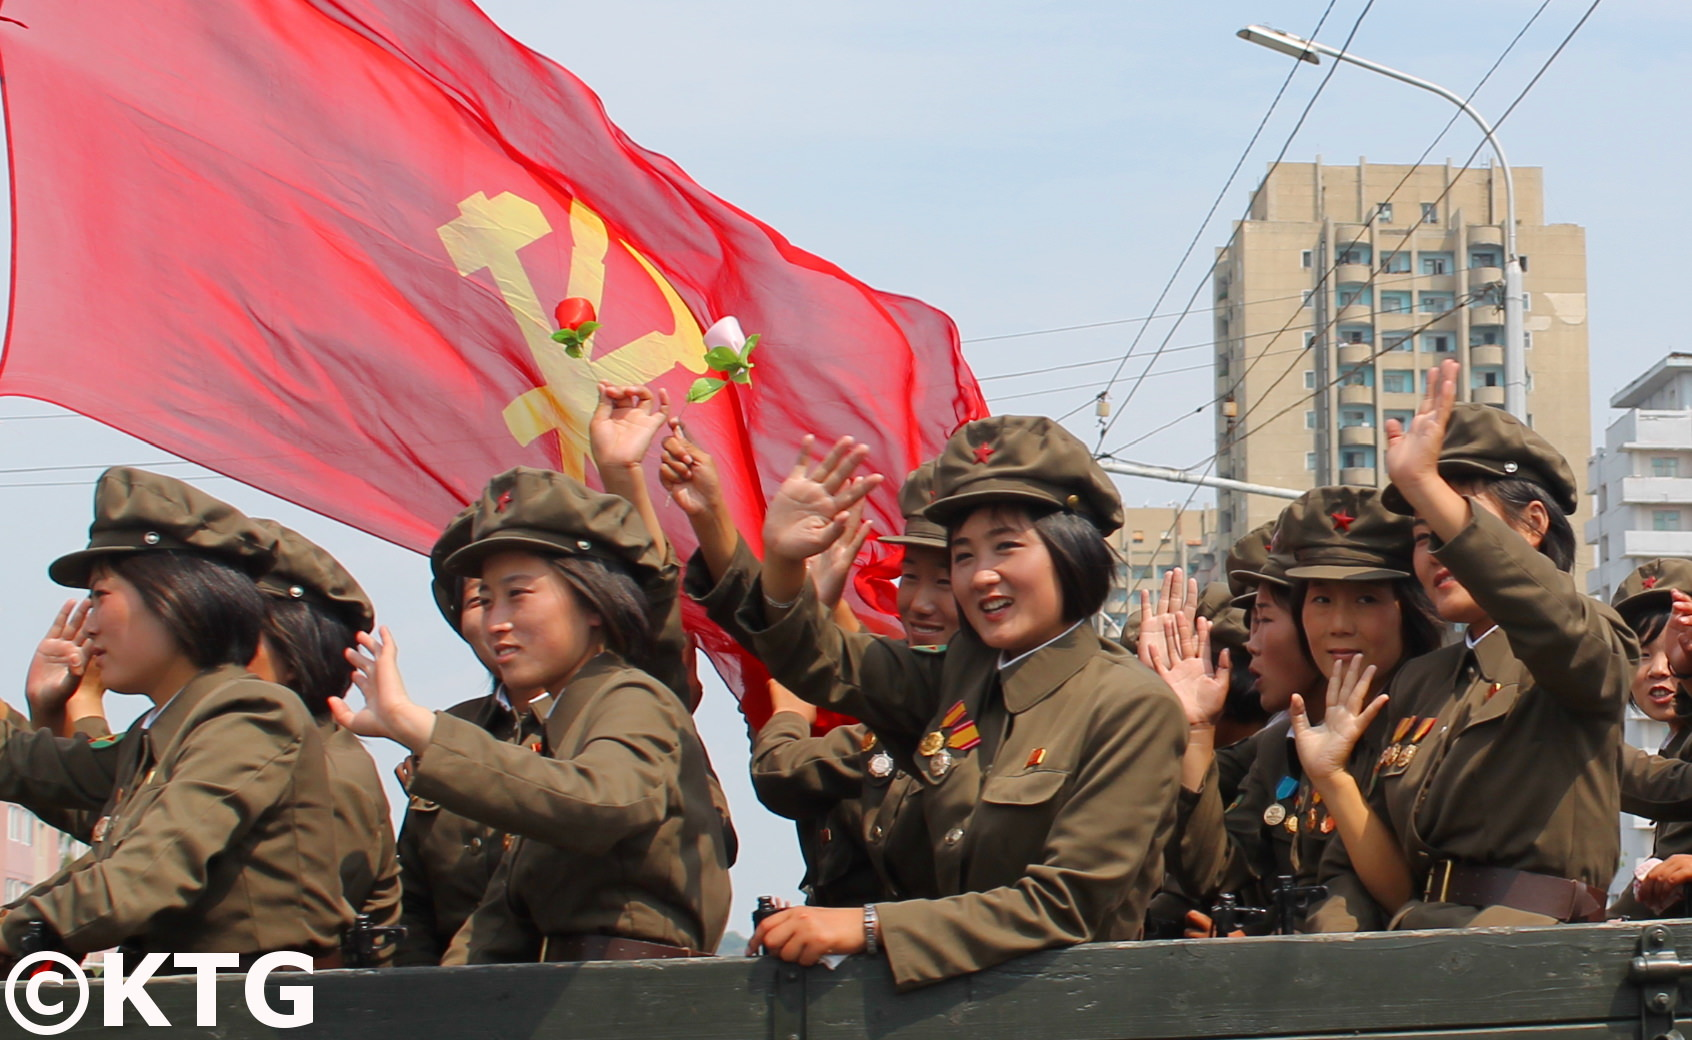 Workers' Party of Korea (WPK) flag